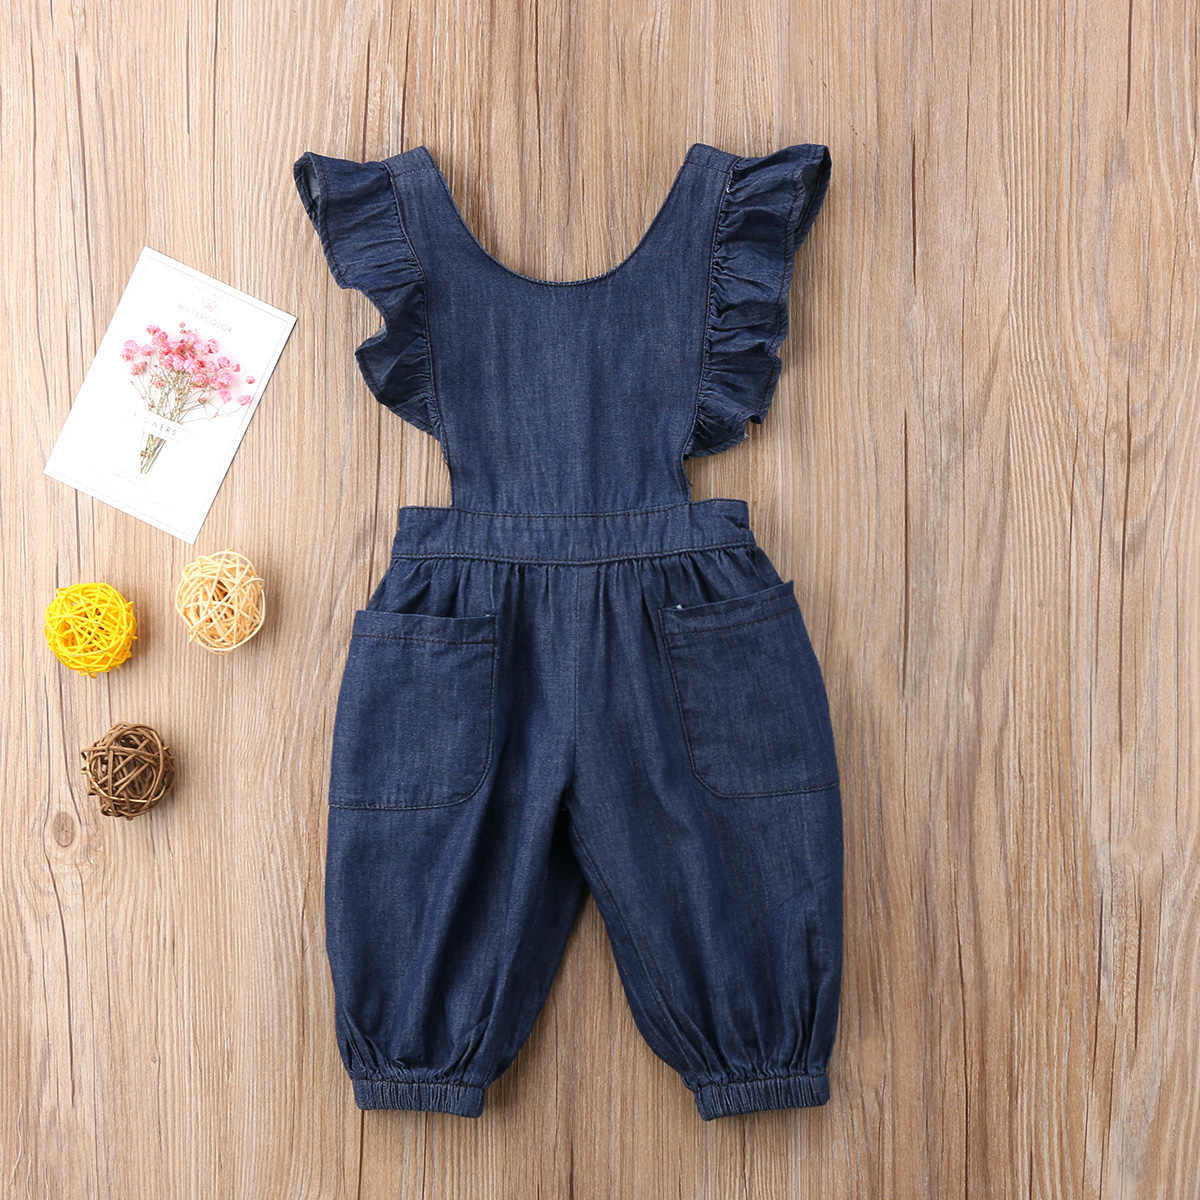 586a29bf2a7e ... Fashion Summer Cute Kids Baby Girls Denim One Piece Loose Overalls  Casual Cross Jumpsuit Romper Outfits ...